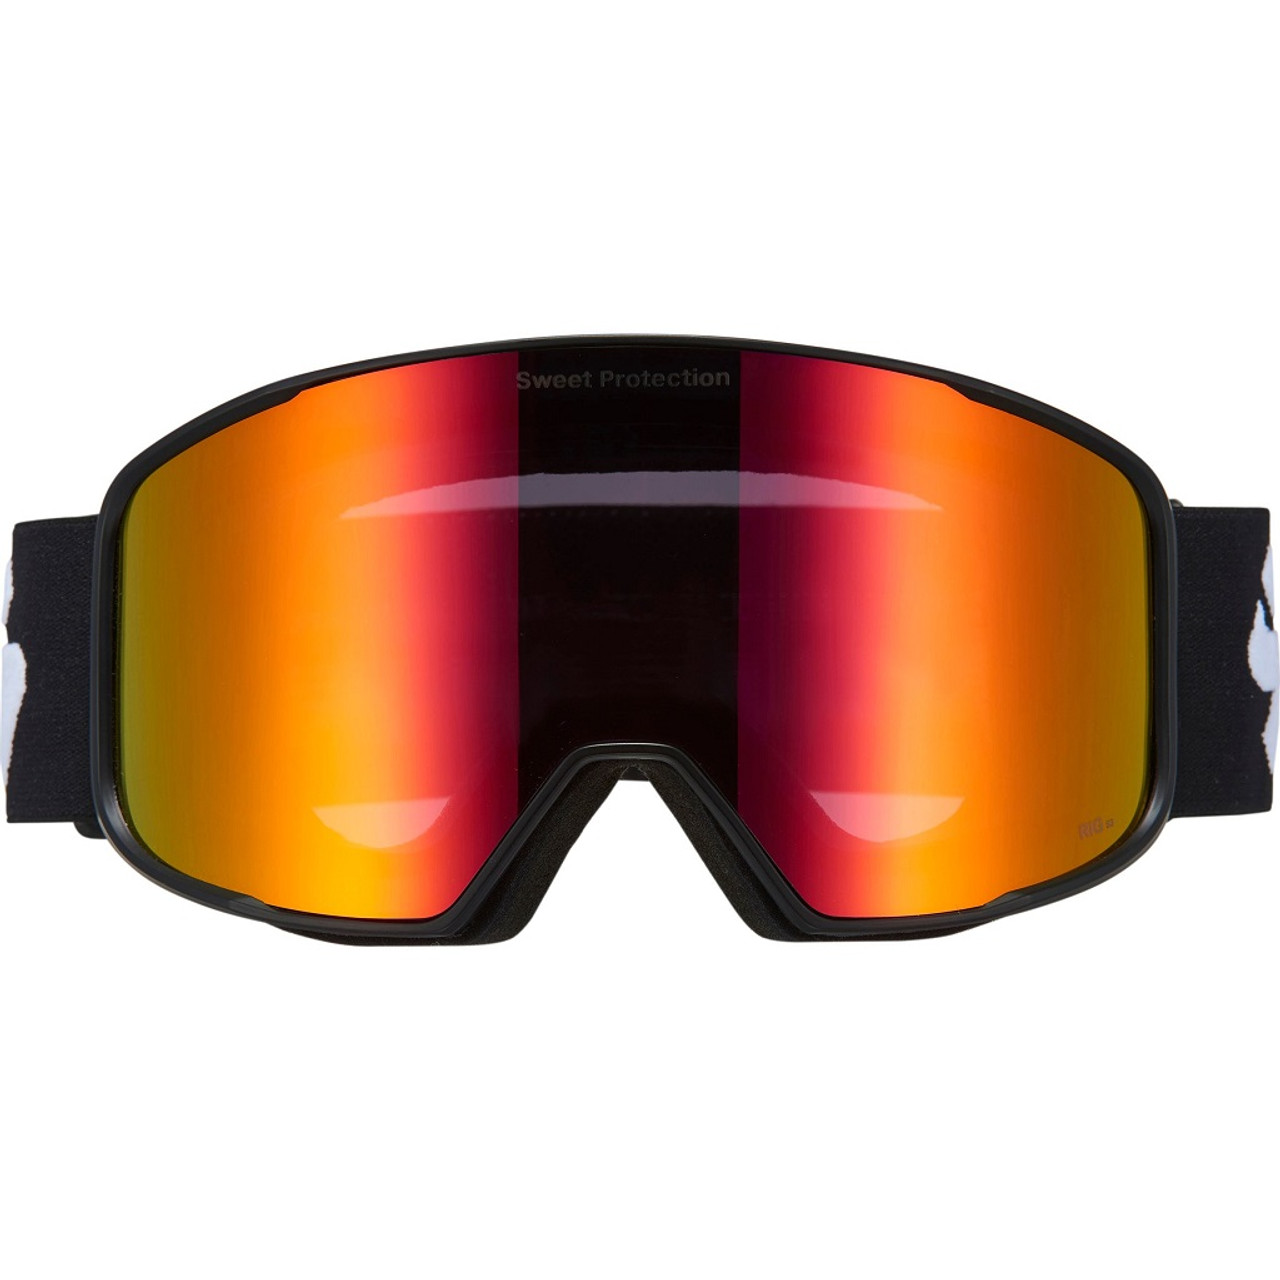 RIG Reflect Topaz - Sweet Protection Boondock Lenses